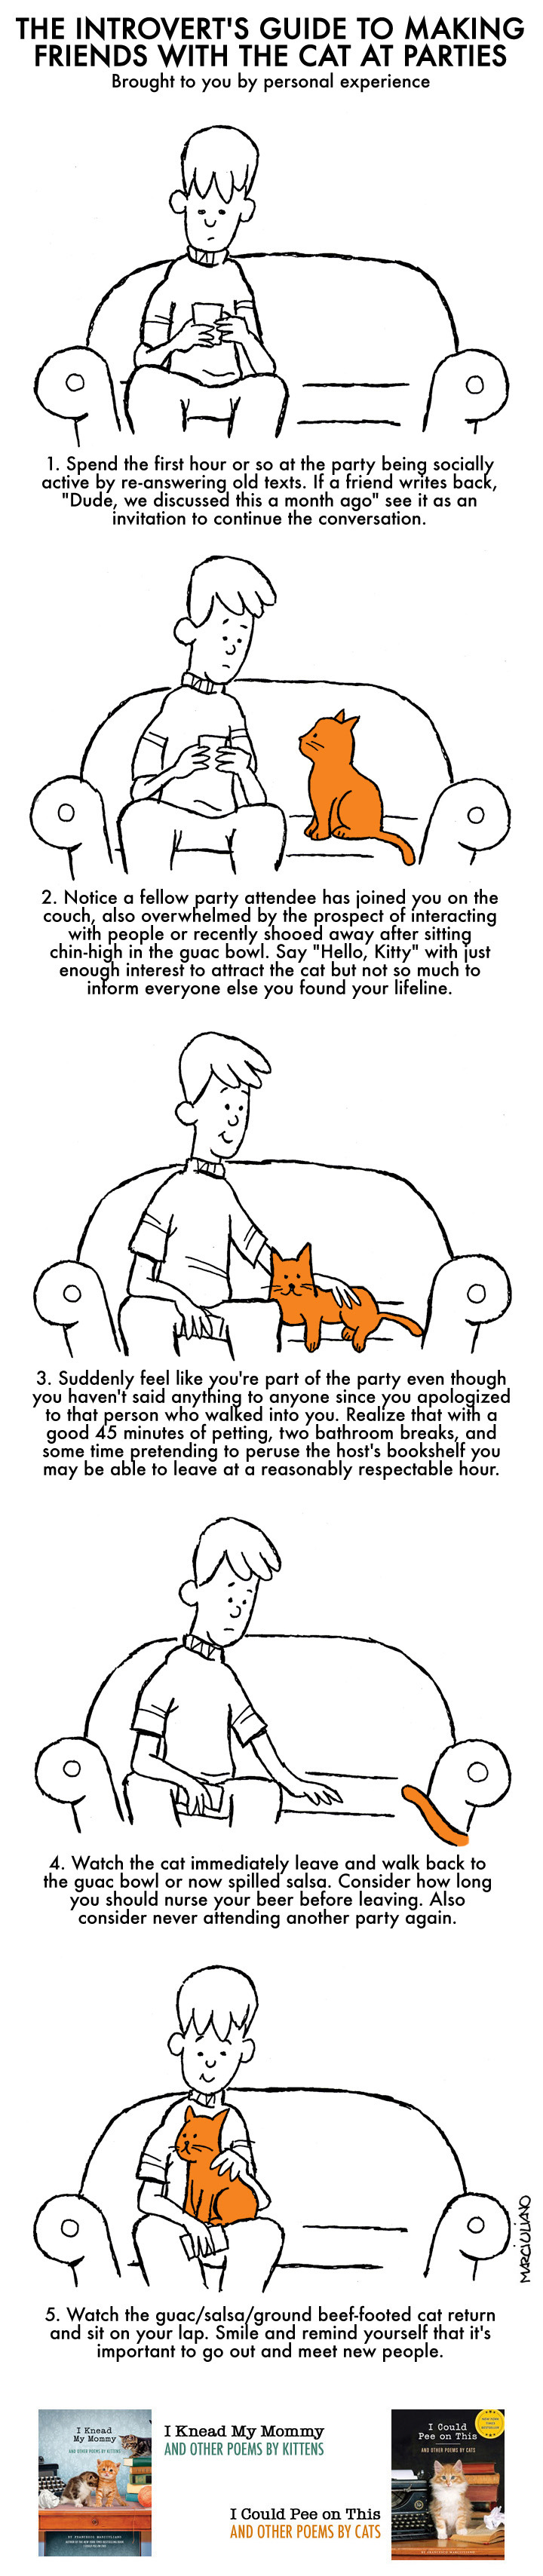 The Introvert's Guide to Making Friends with the Cat at Parties